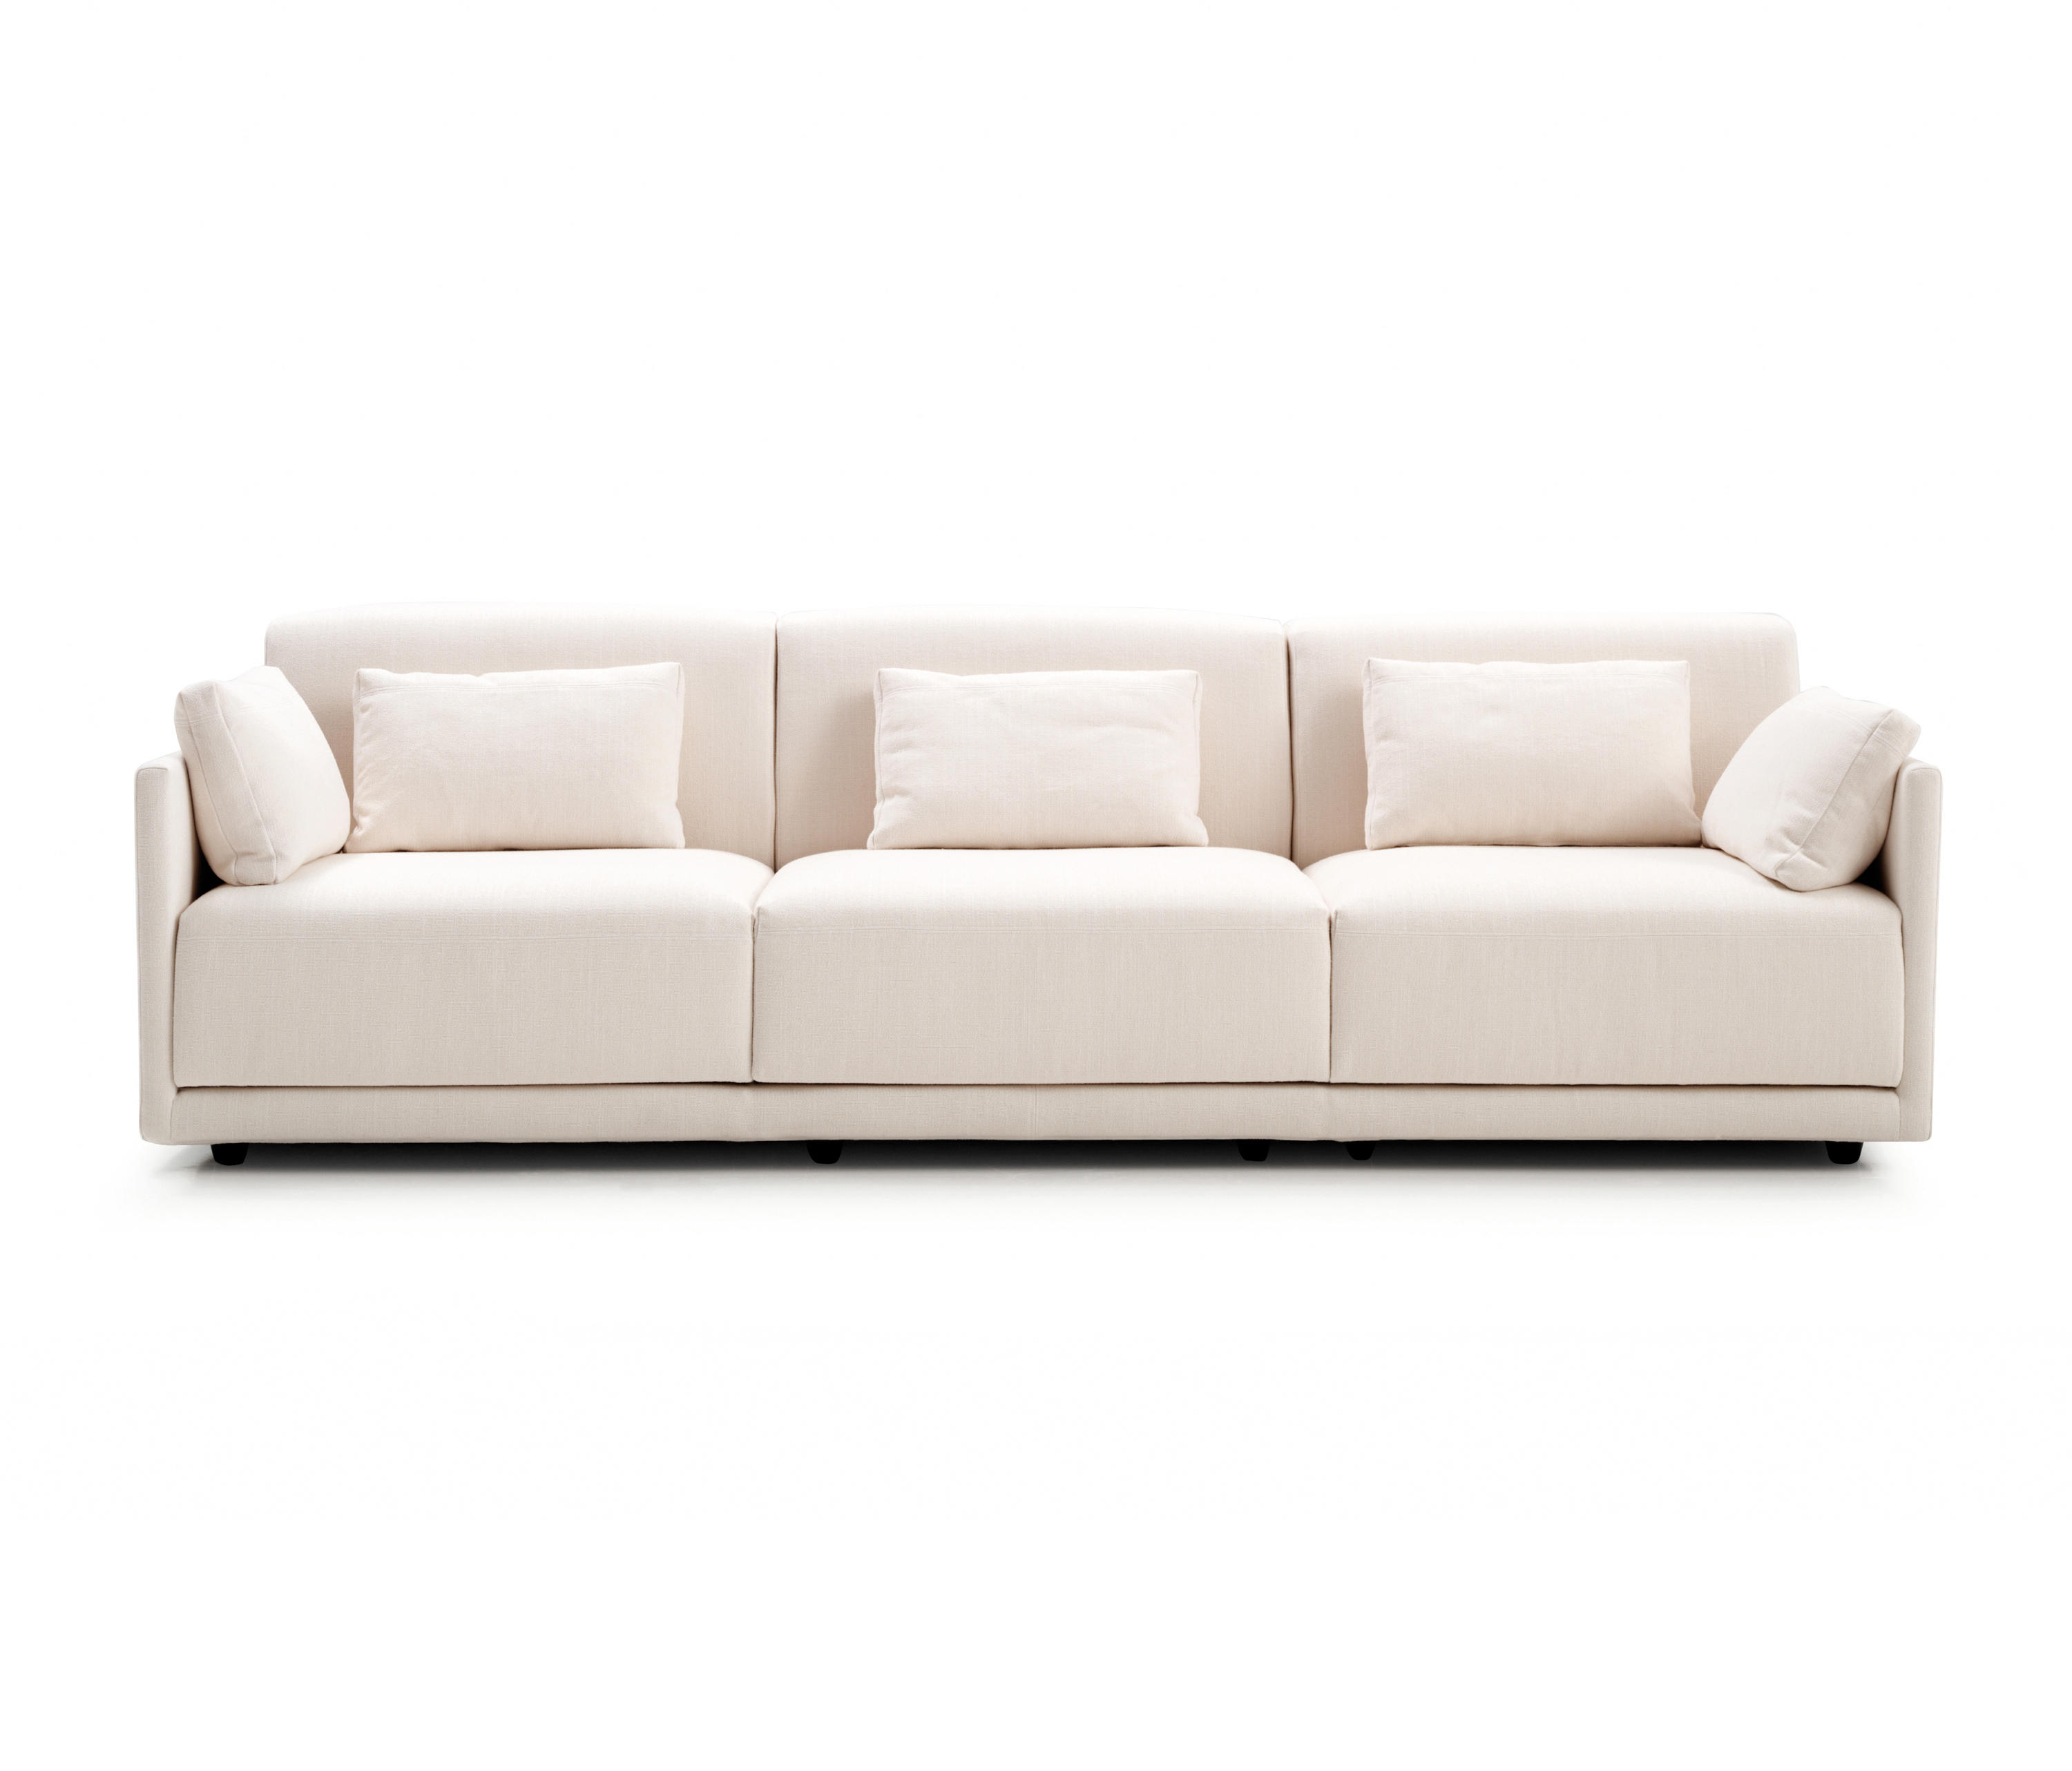 HAPPEN - Sofas from Sancal | Architonic